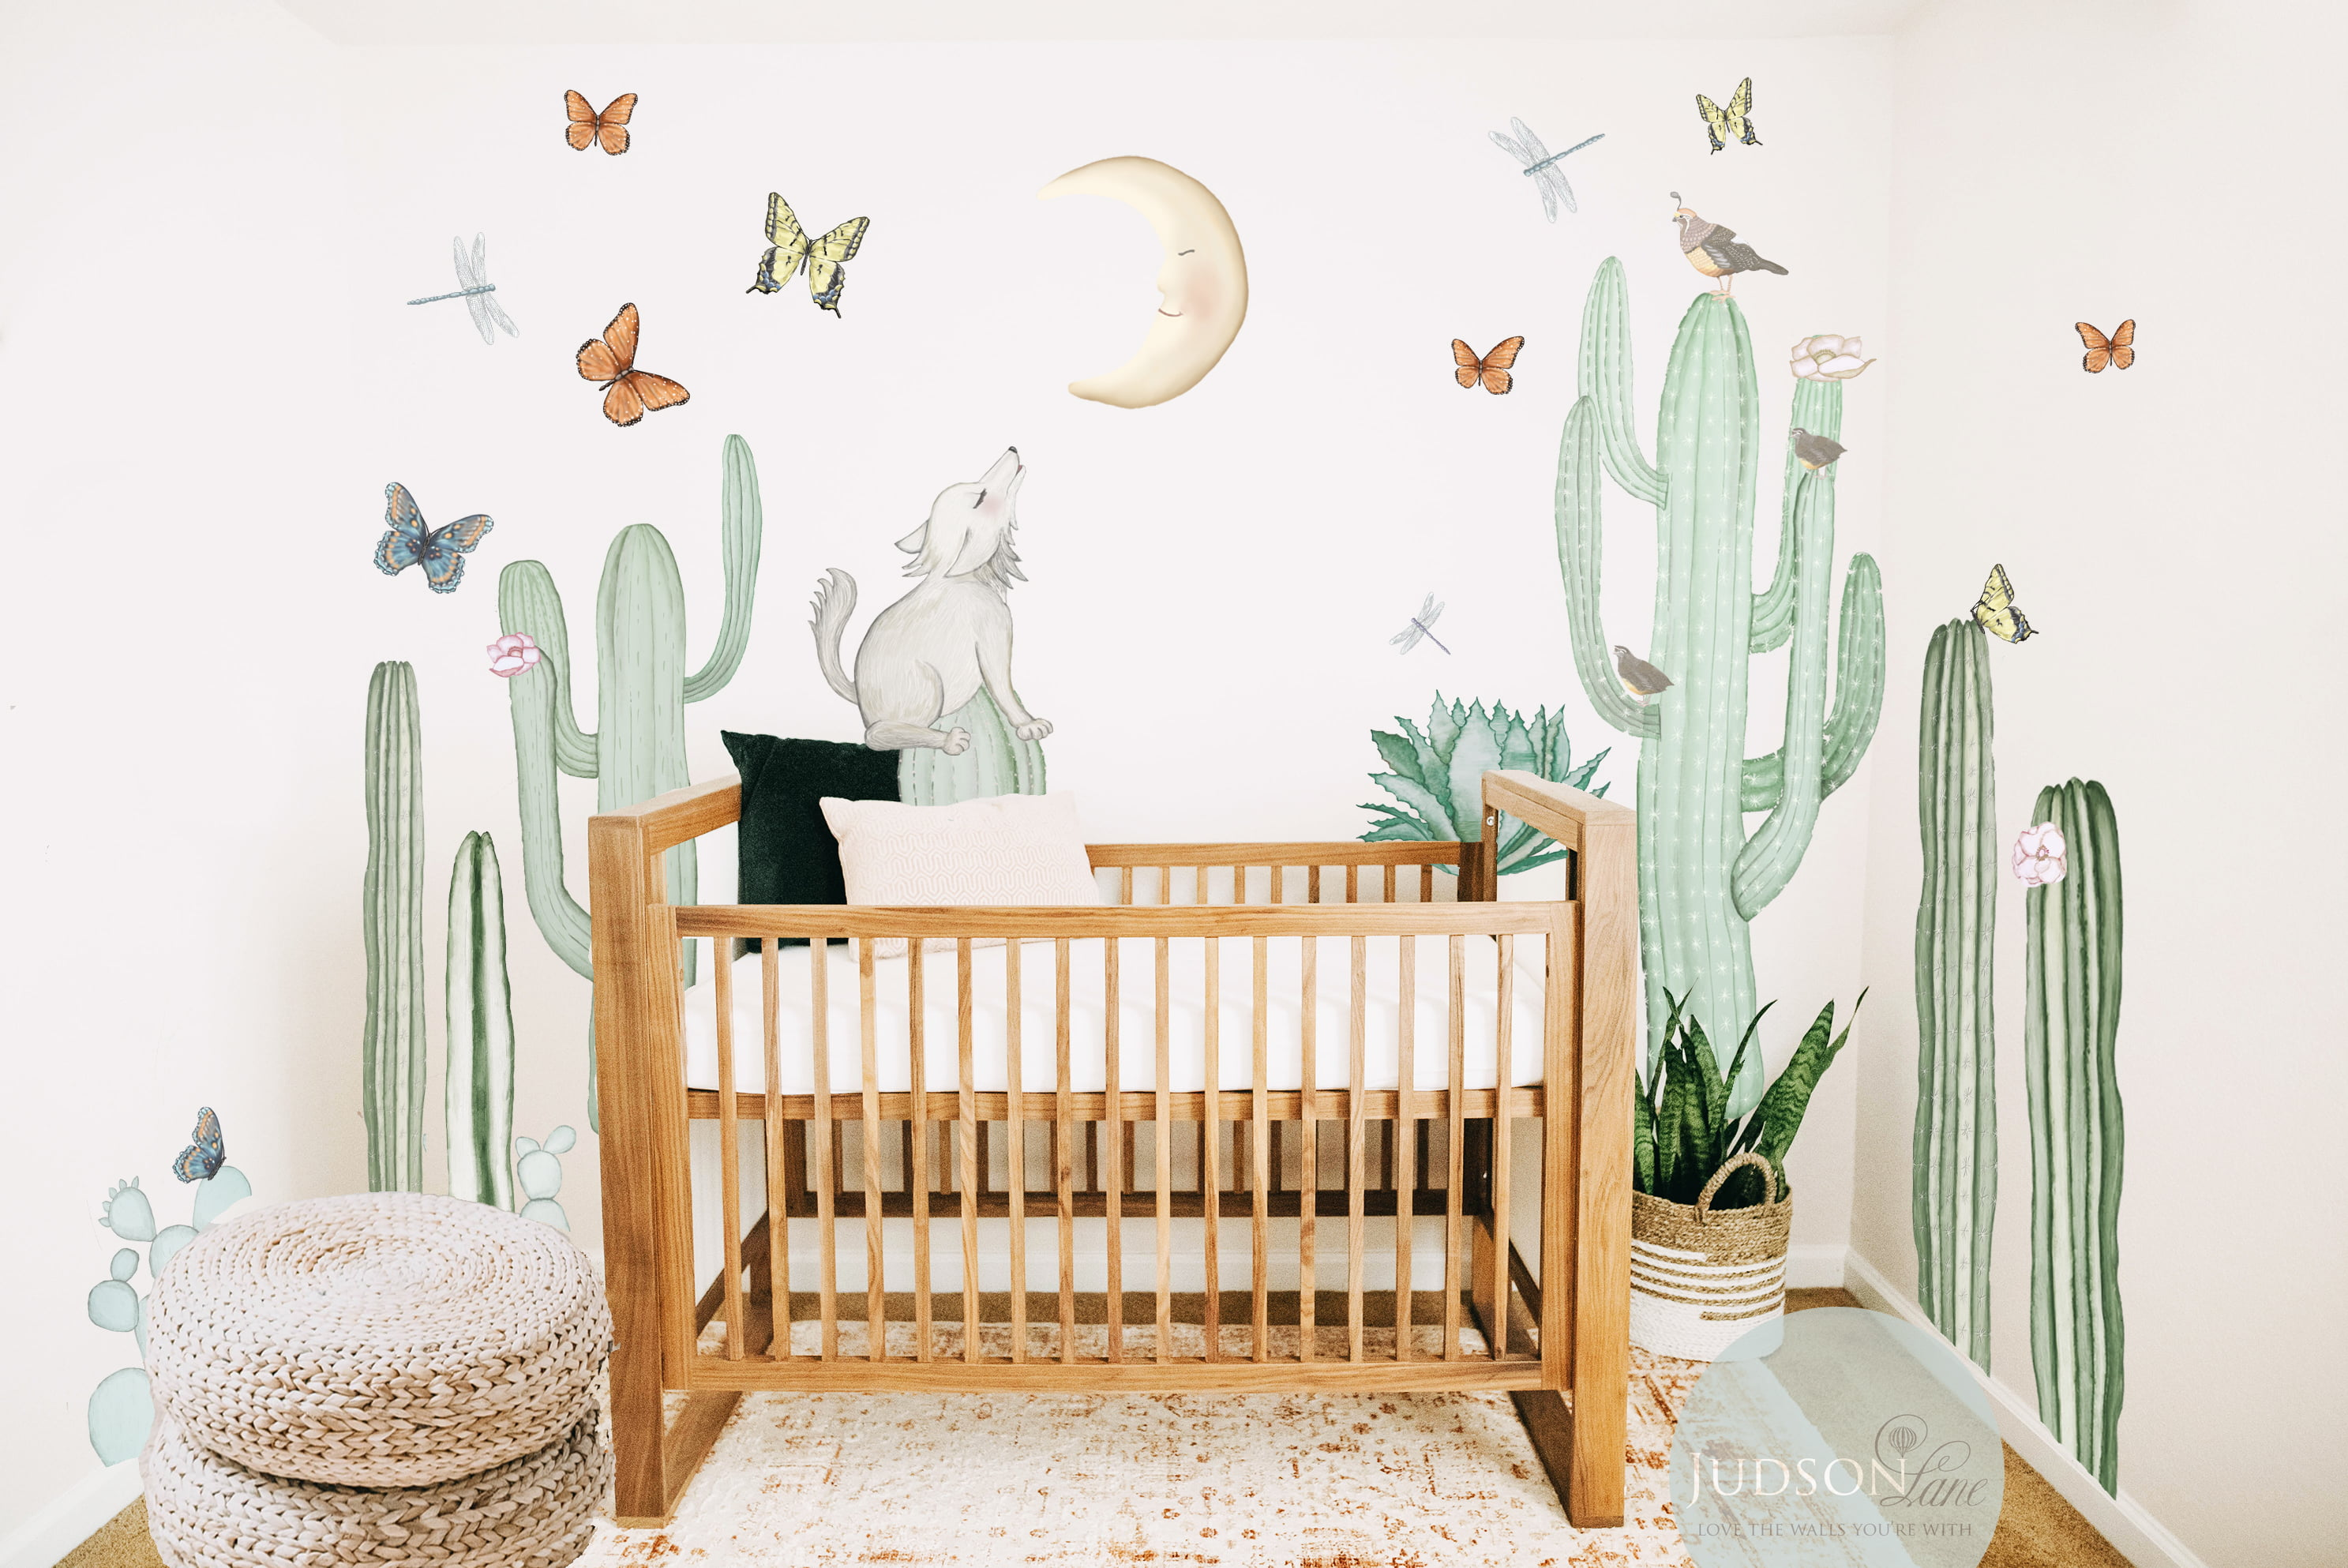 Judson Lane Wall Design Launches Sonoran Collection